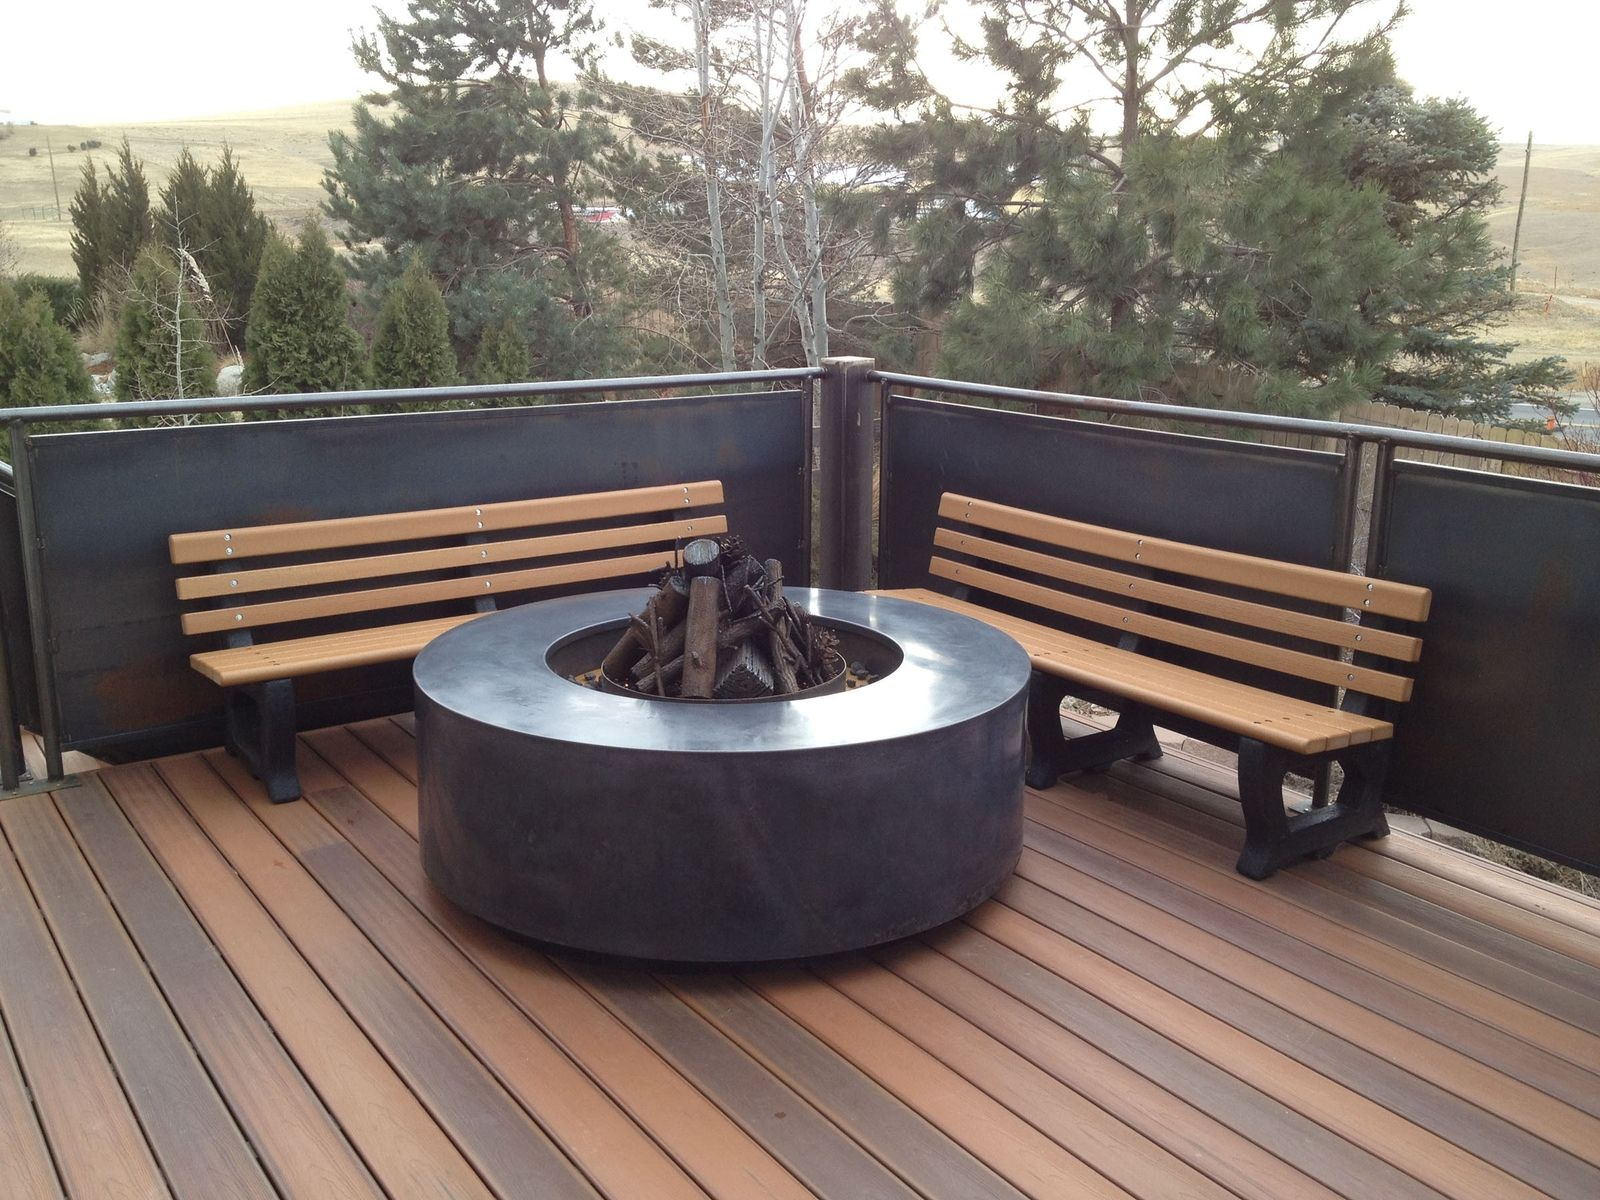 Very Impressive portraiture of Handmade Floating Concrete Fire Pit Surround by Concrete Pete  with #835E48 color and 1600x1200 pixels